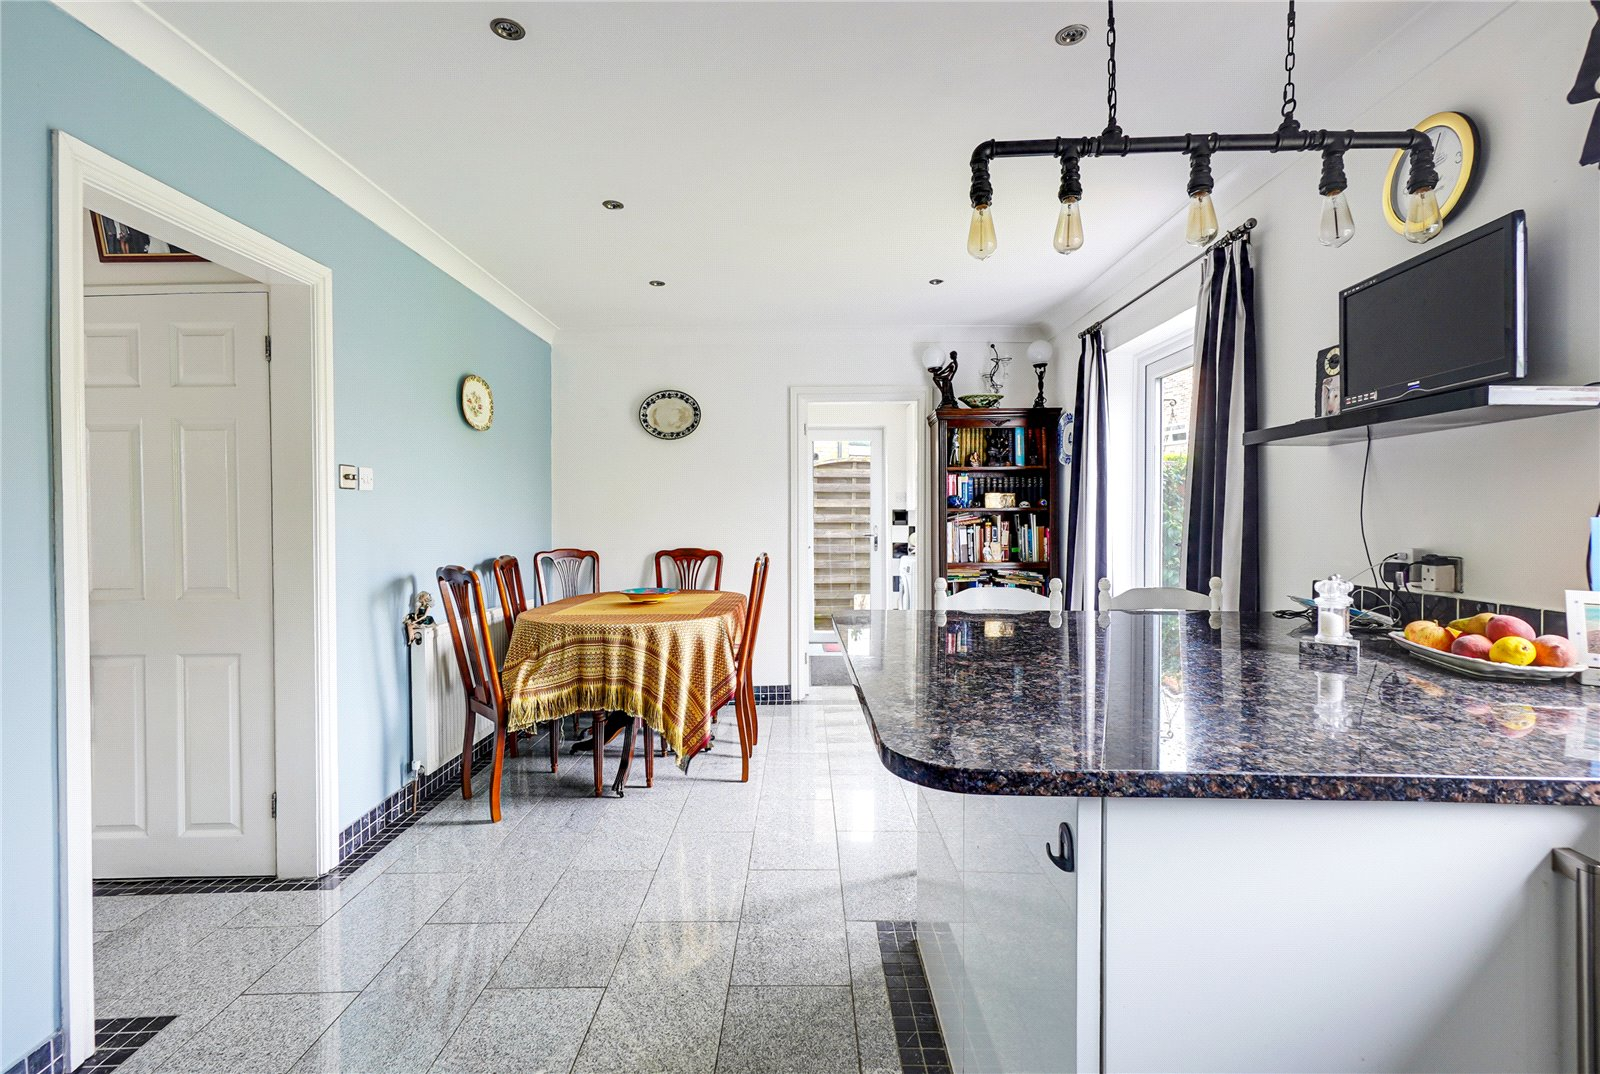 4 bed house for sale in Cobtree Road, Coxheath, ME17